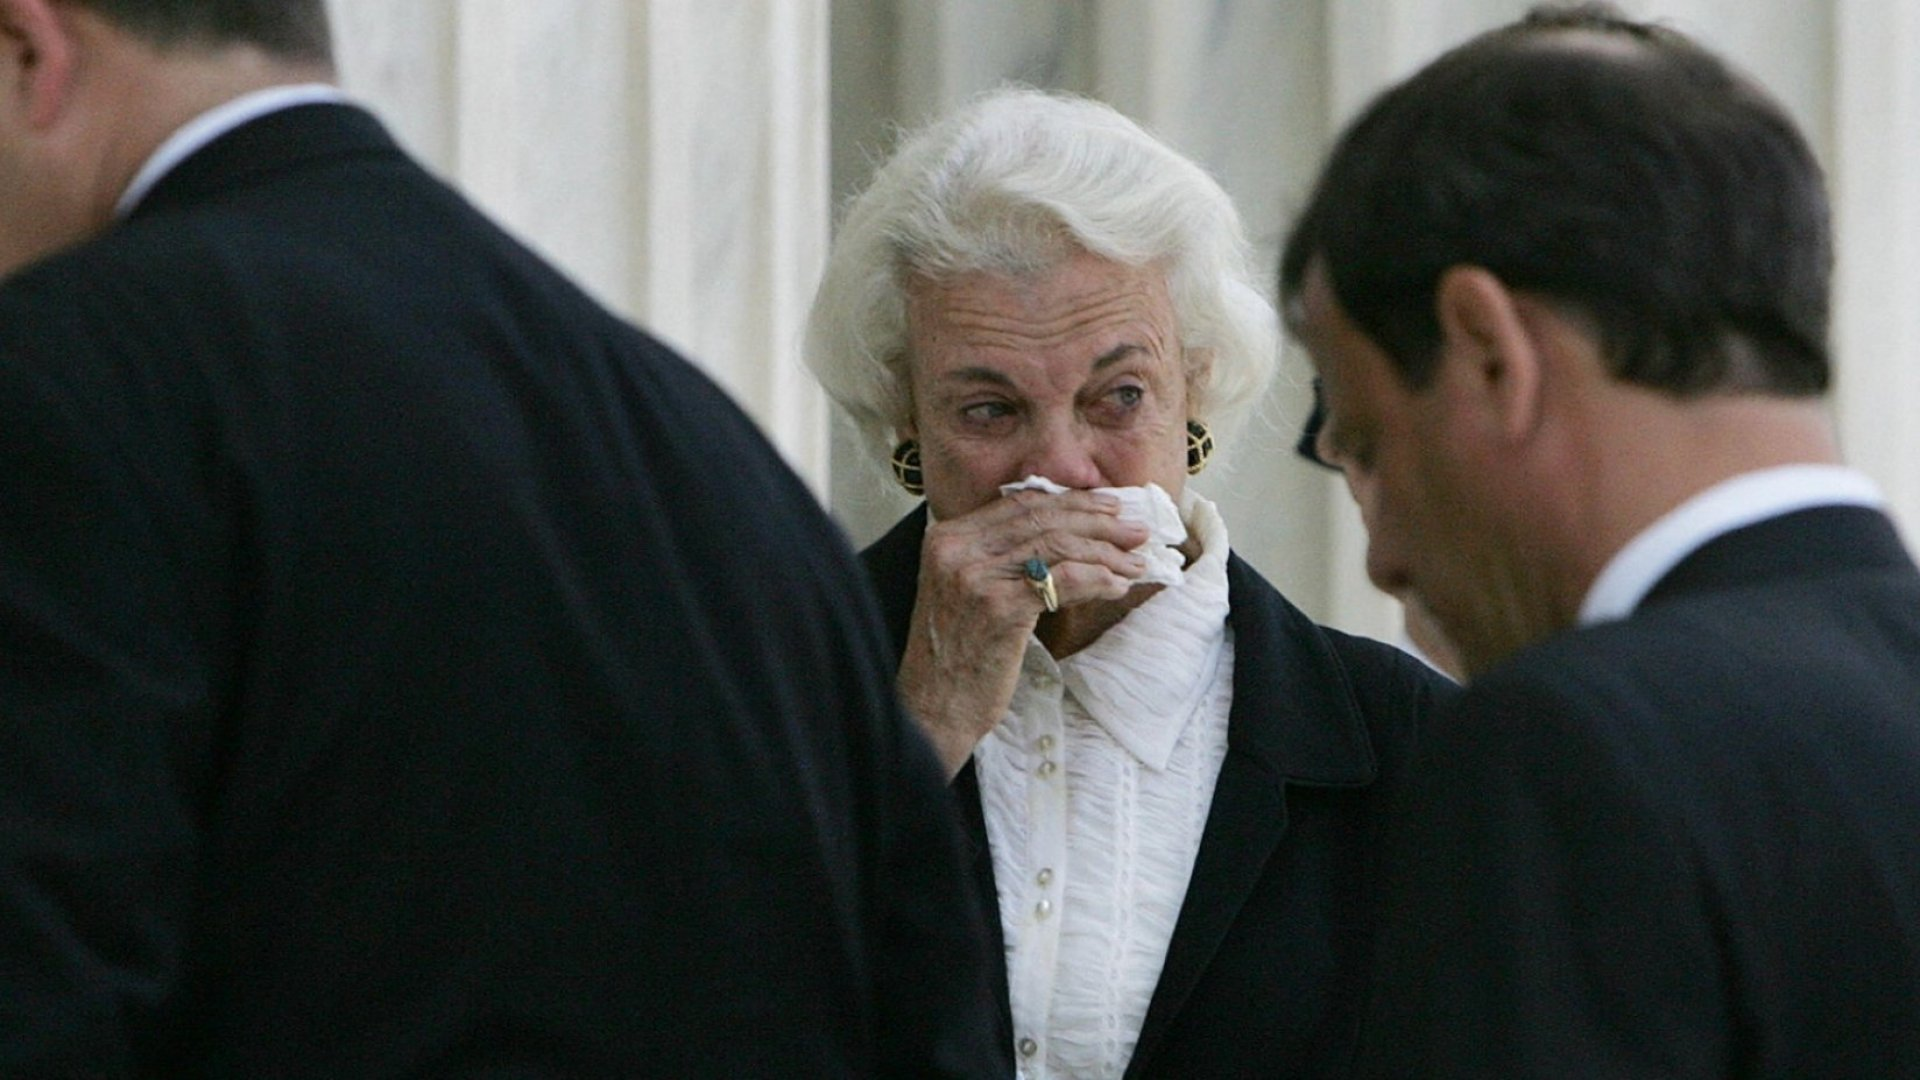 Sandra Day O'Connor looks on as pallbearers carry William Rehnquist's casket up the steps of the Supreme Court